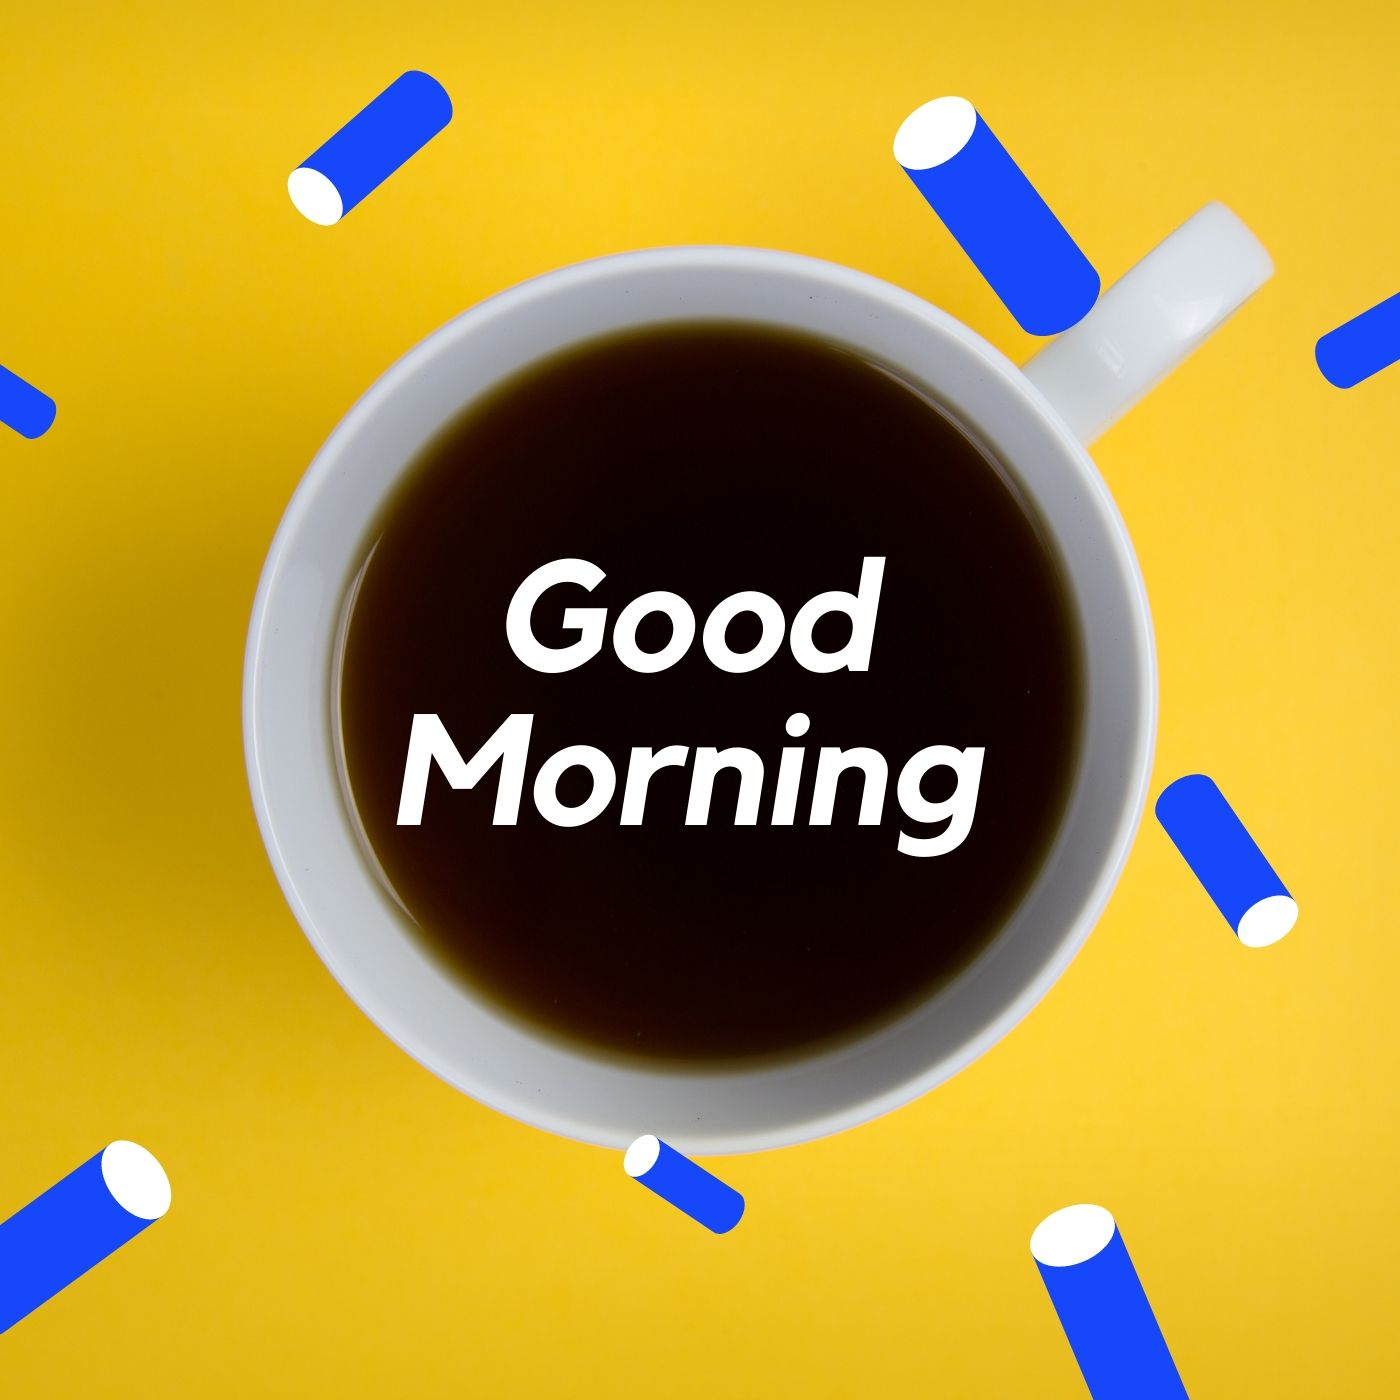 Good Morning Coffee image yello background full HD free download.